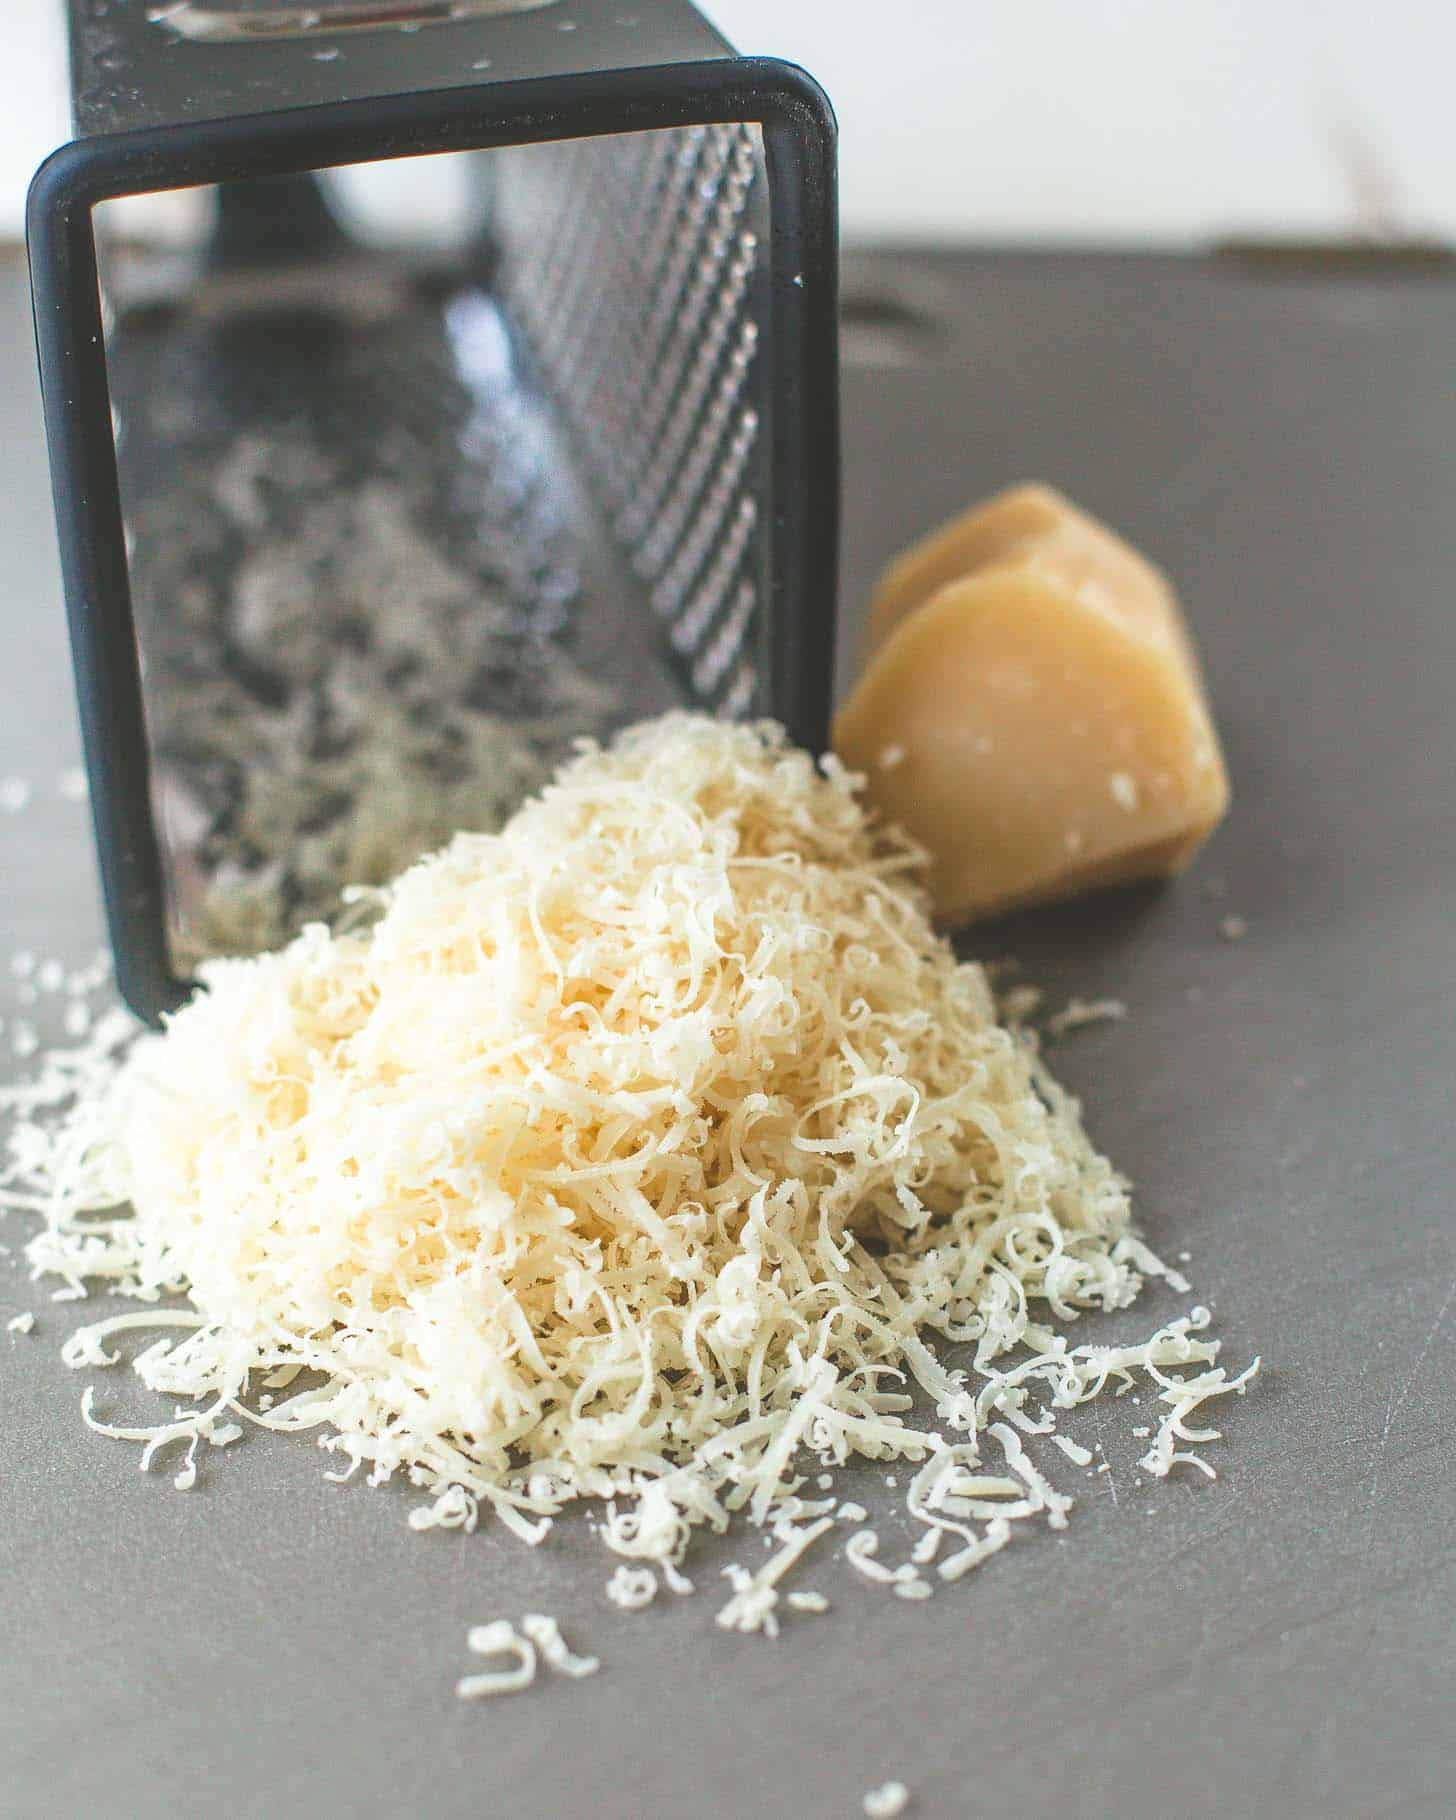 shredded parmesan and a box grater on a table